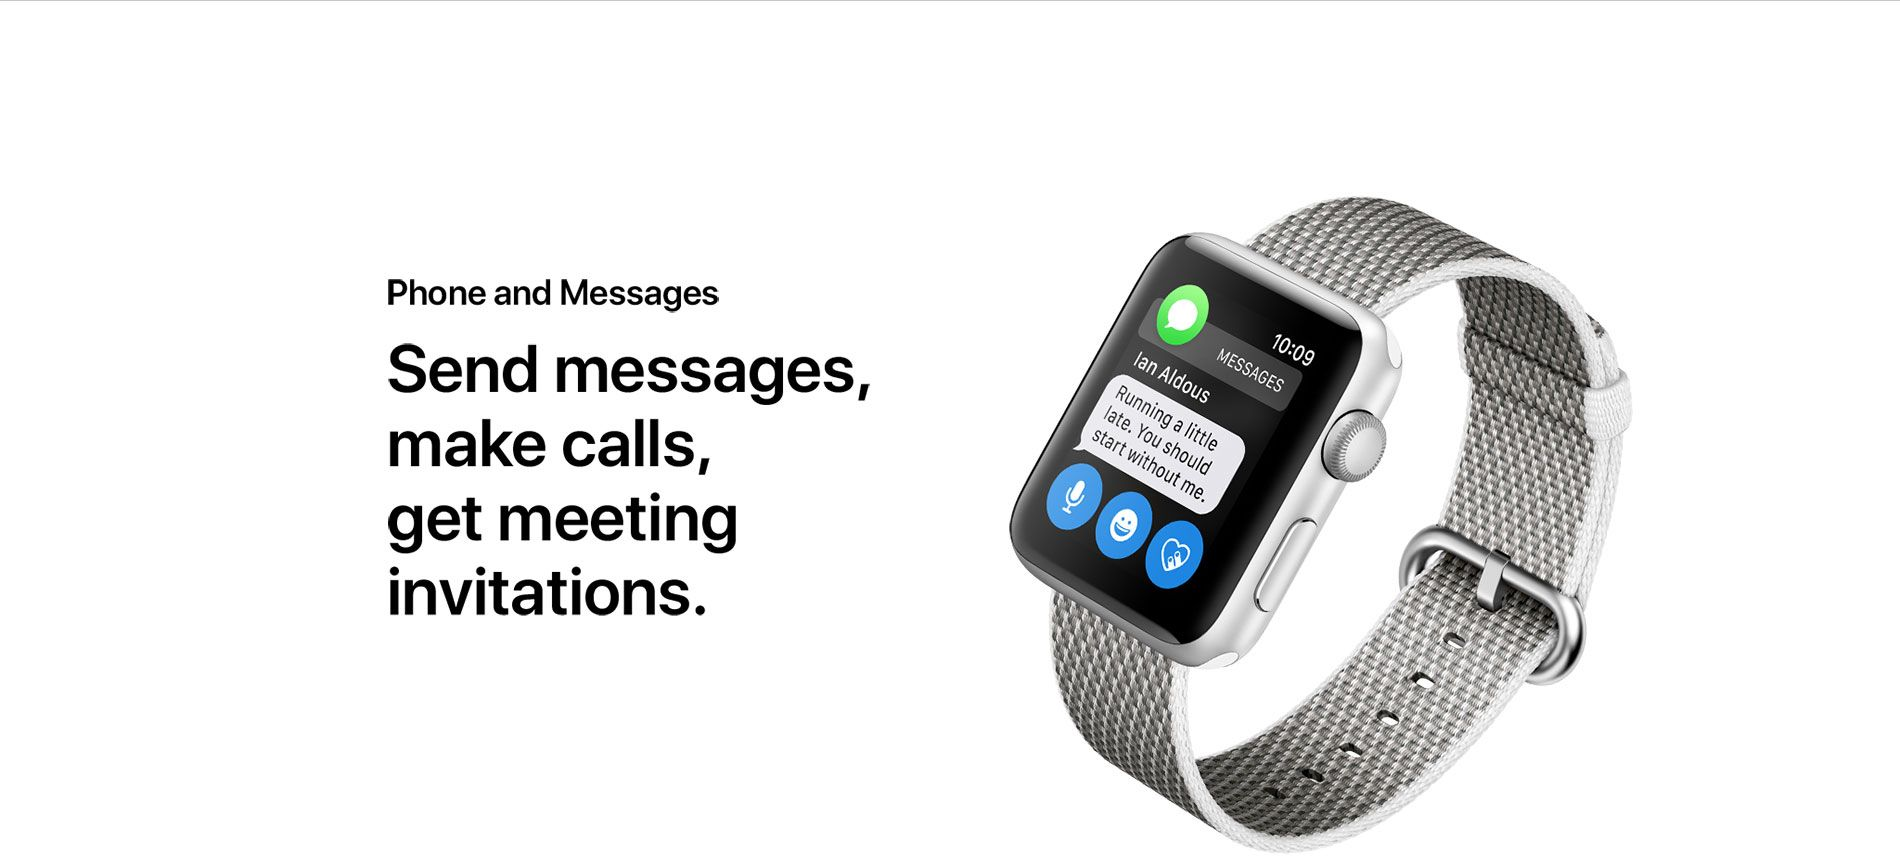 Phone and Messages - Send messages, make calls, get meeting invitations.